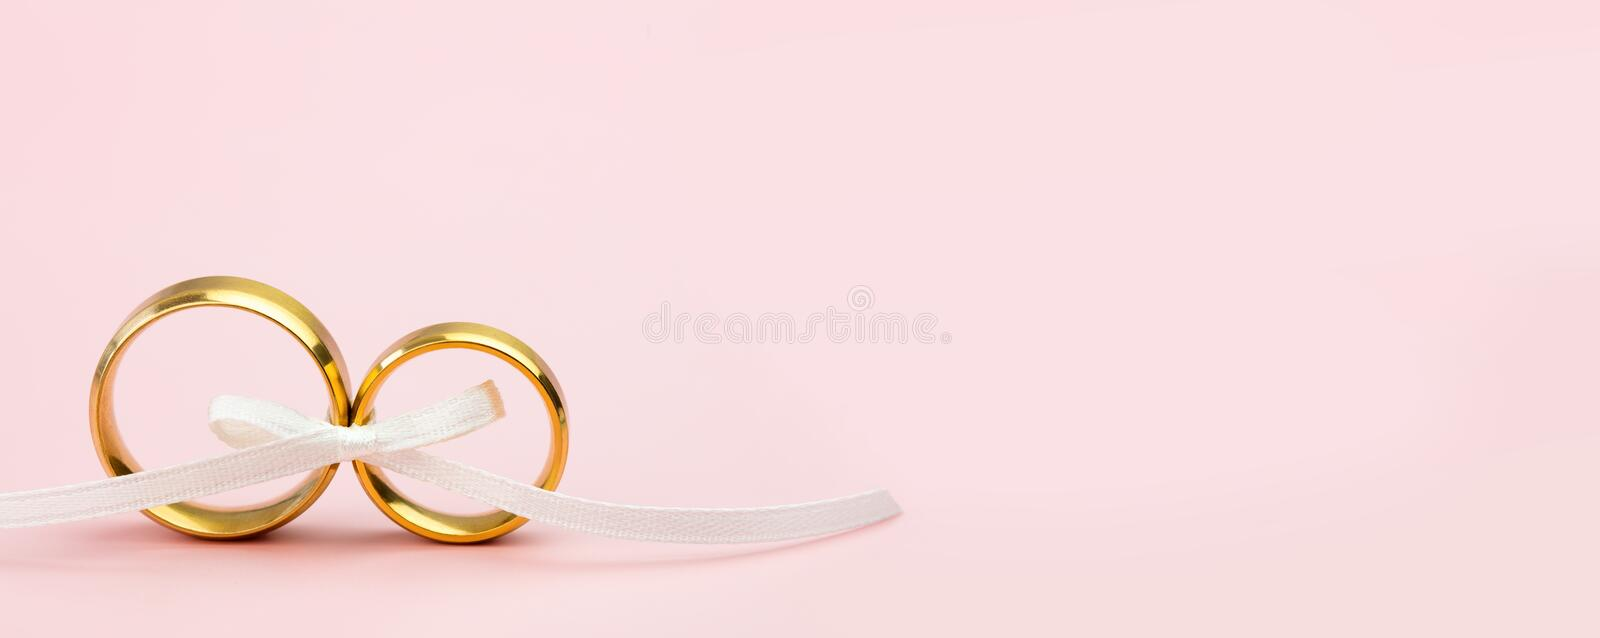 Elegant Wedding or Engagement banner background - pair of golden wedding rings on light pink background royalty free stock photos